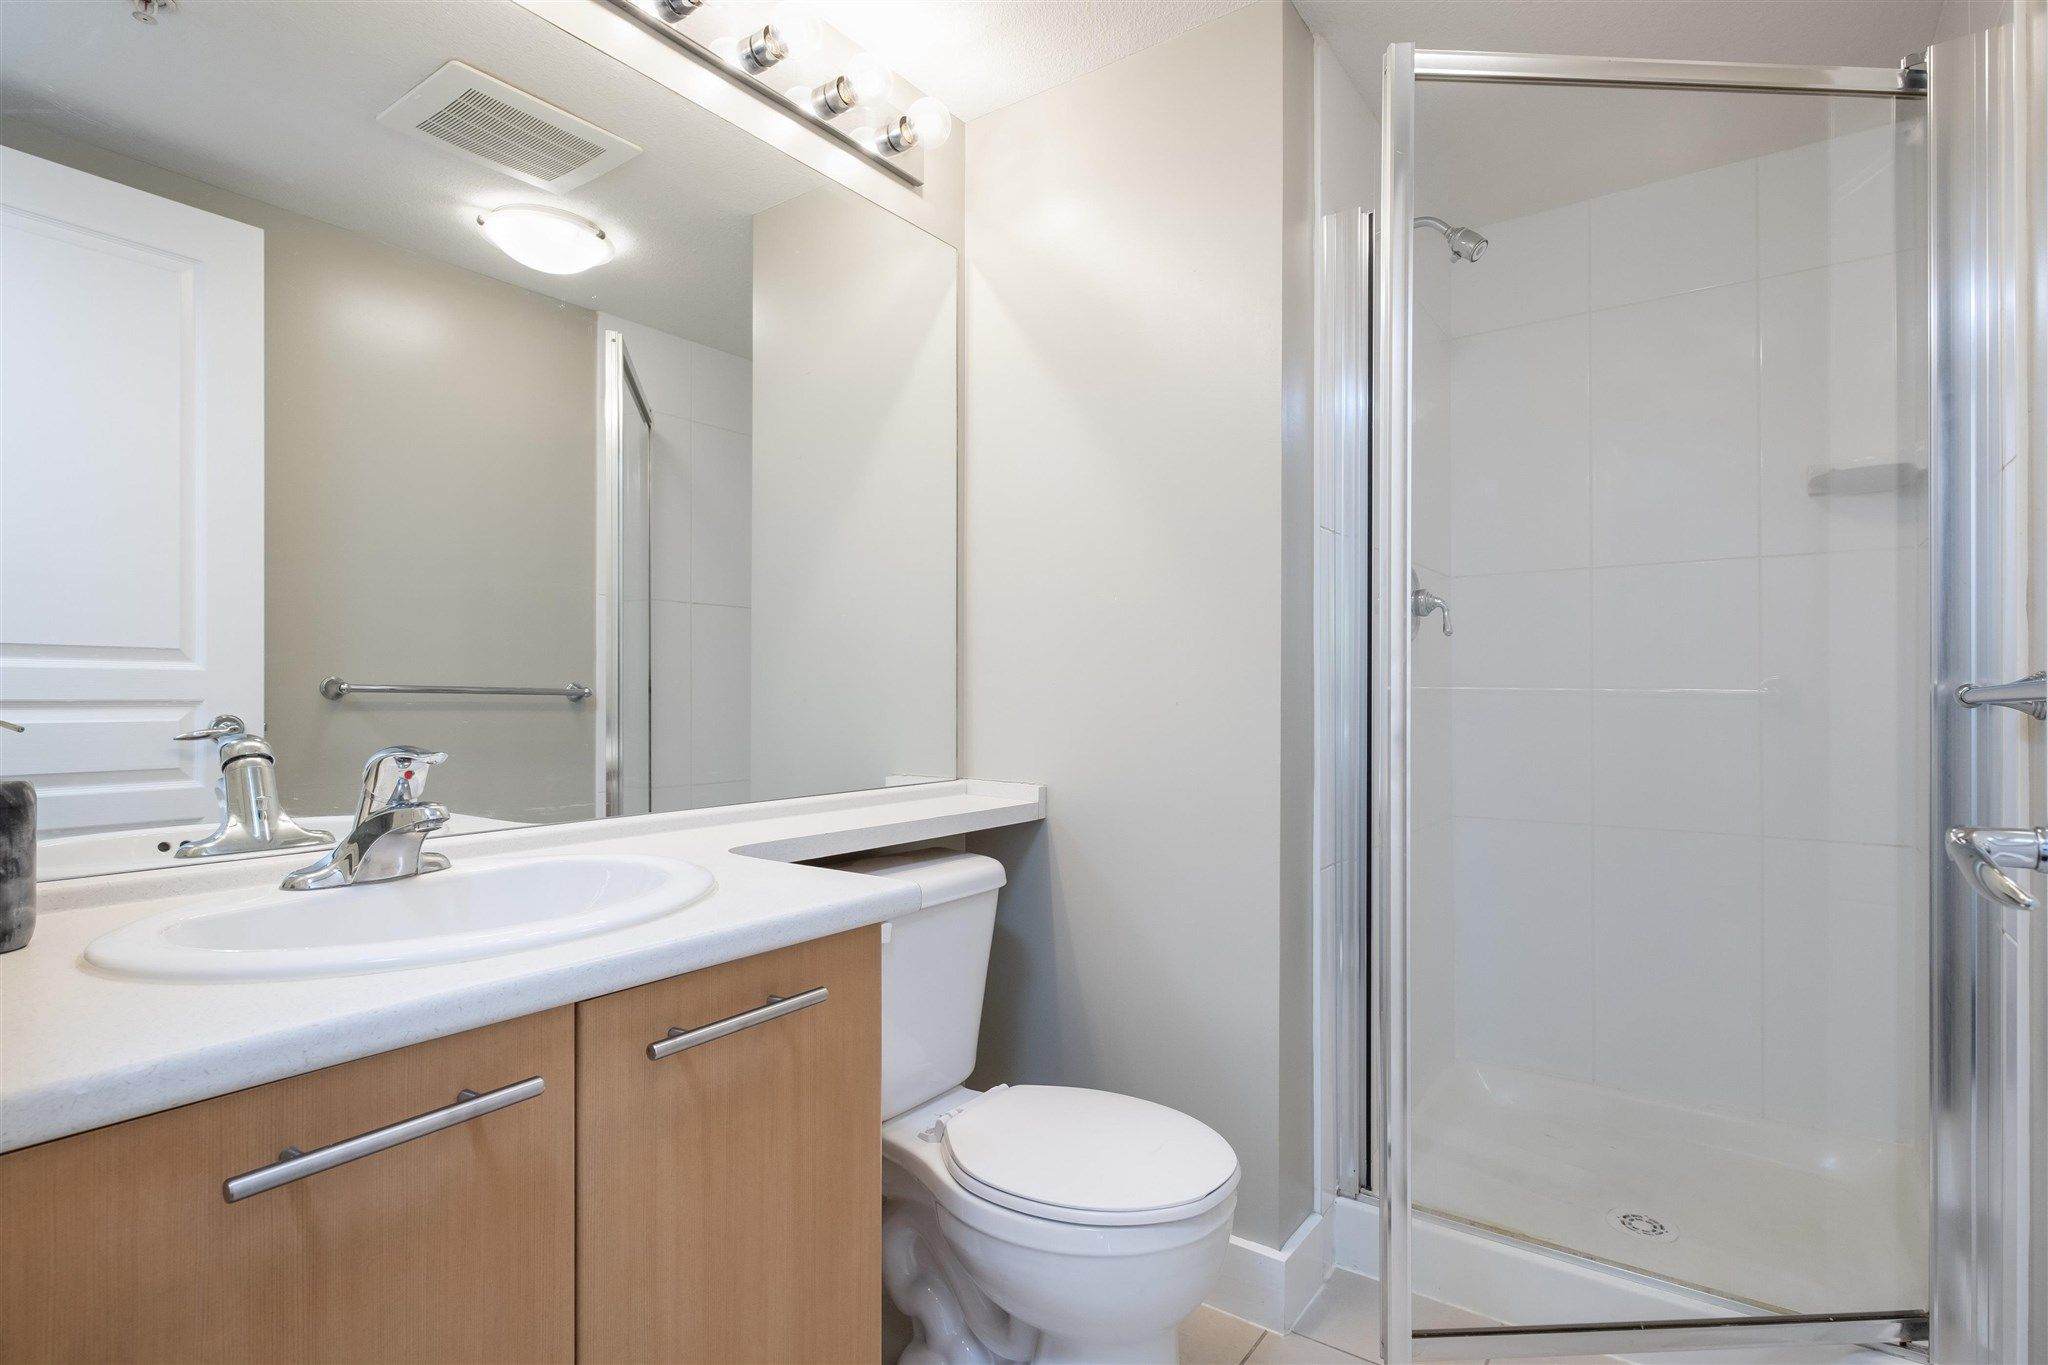 """Photo 14: Photos: 211 9339 UNIVERSITY Crescent in Burnaby: Simon Fraser Univer. Condo for sale in """"HARMONY"""" (Burnaby North)  : MLS®# R2597666"""